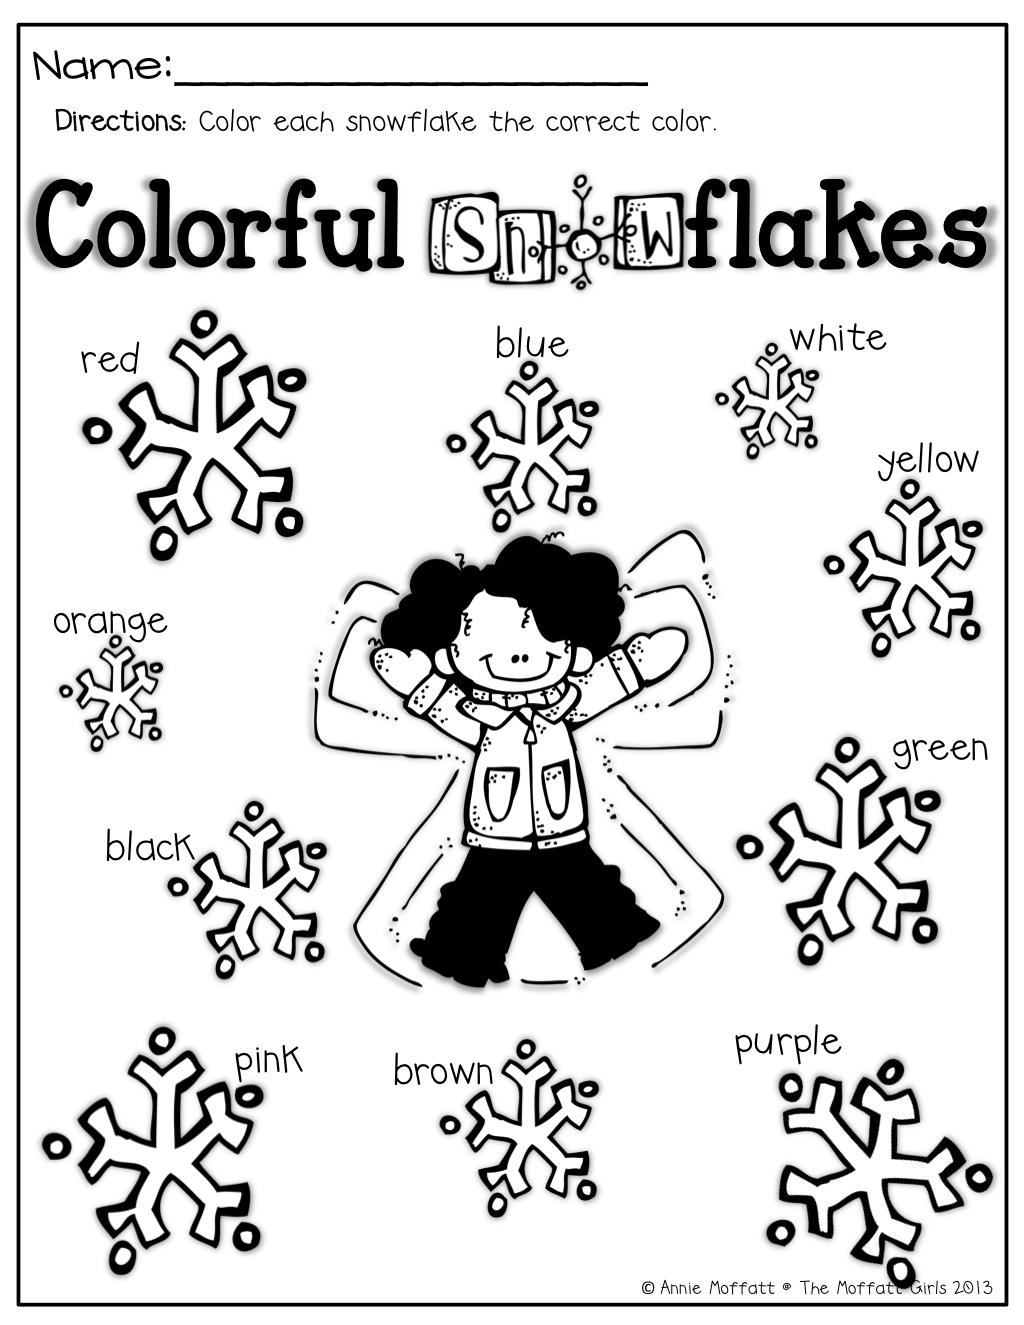 Working With Color Words Color The Snowflake The Correct